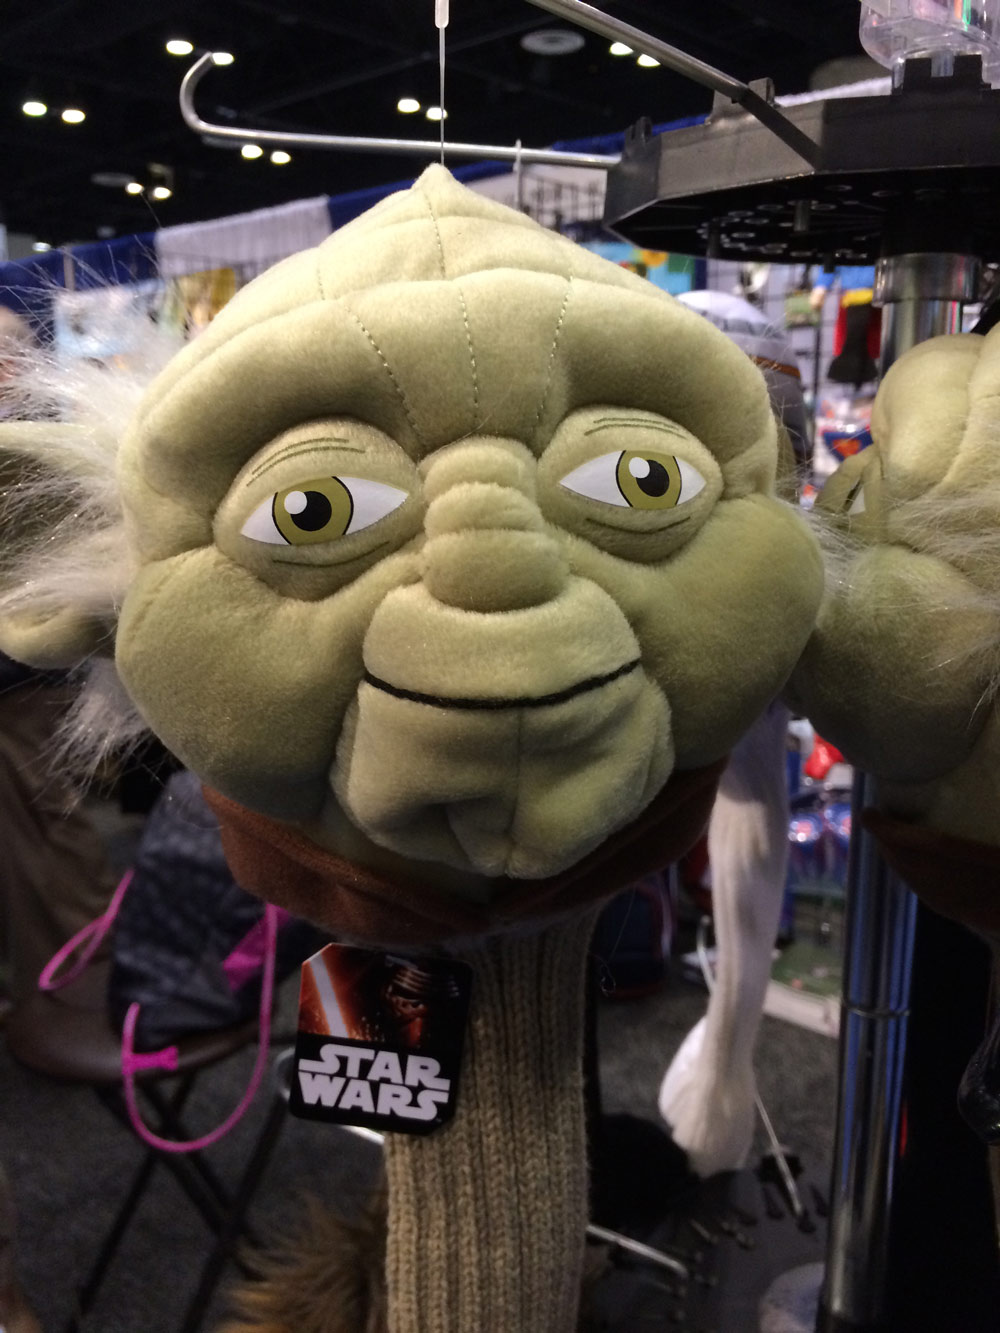 The Yoda head cover is one of eight Star Wars themed head covers distributed by Hornungs golf products. Yoda, Darth Vader and Kylo Ren are all part of the group available for drivers and hybrid head covers. $20-$25; hornungs.com